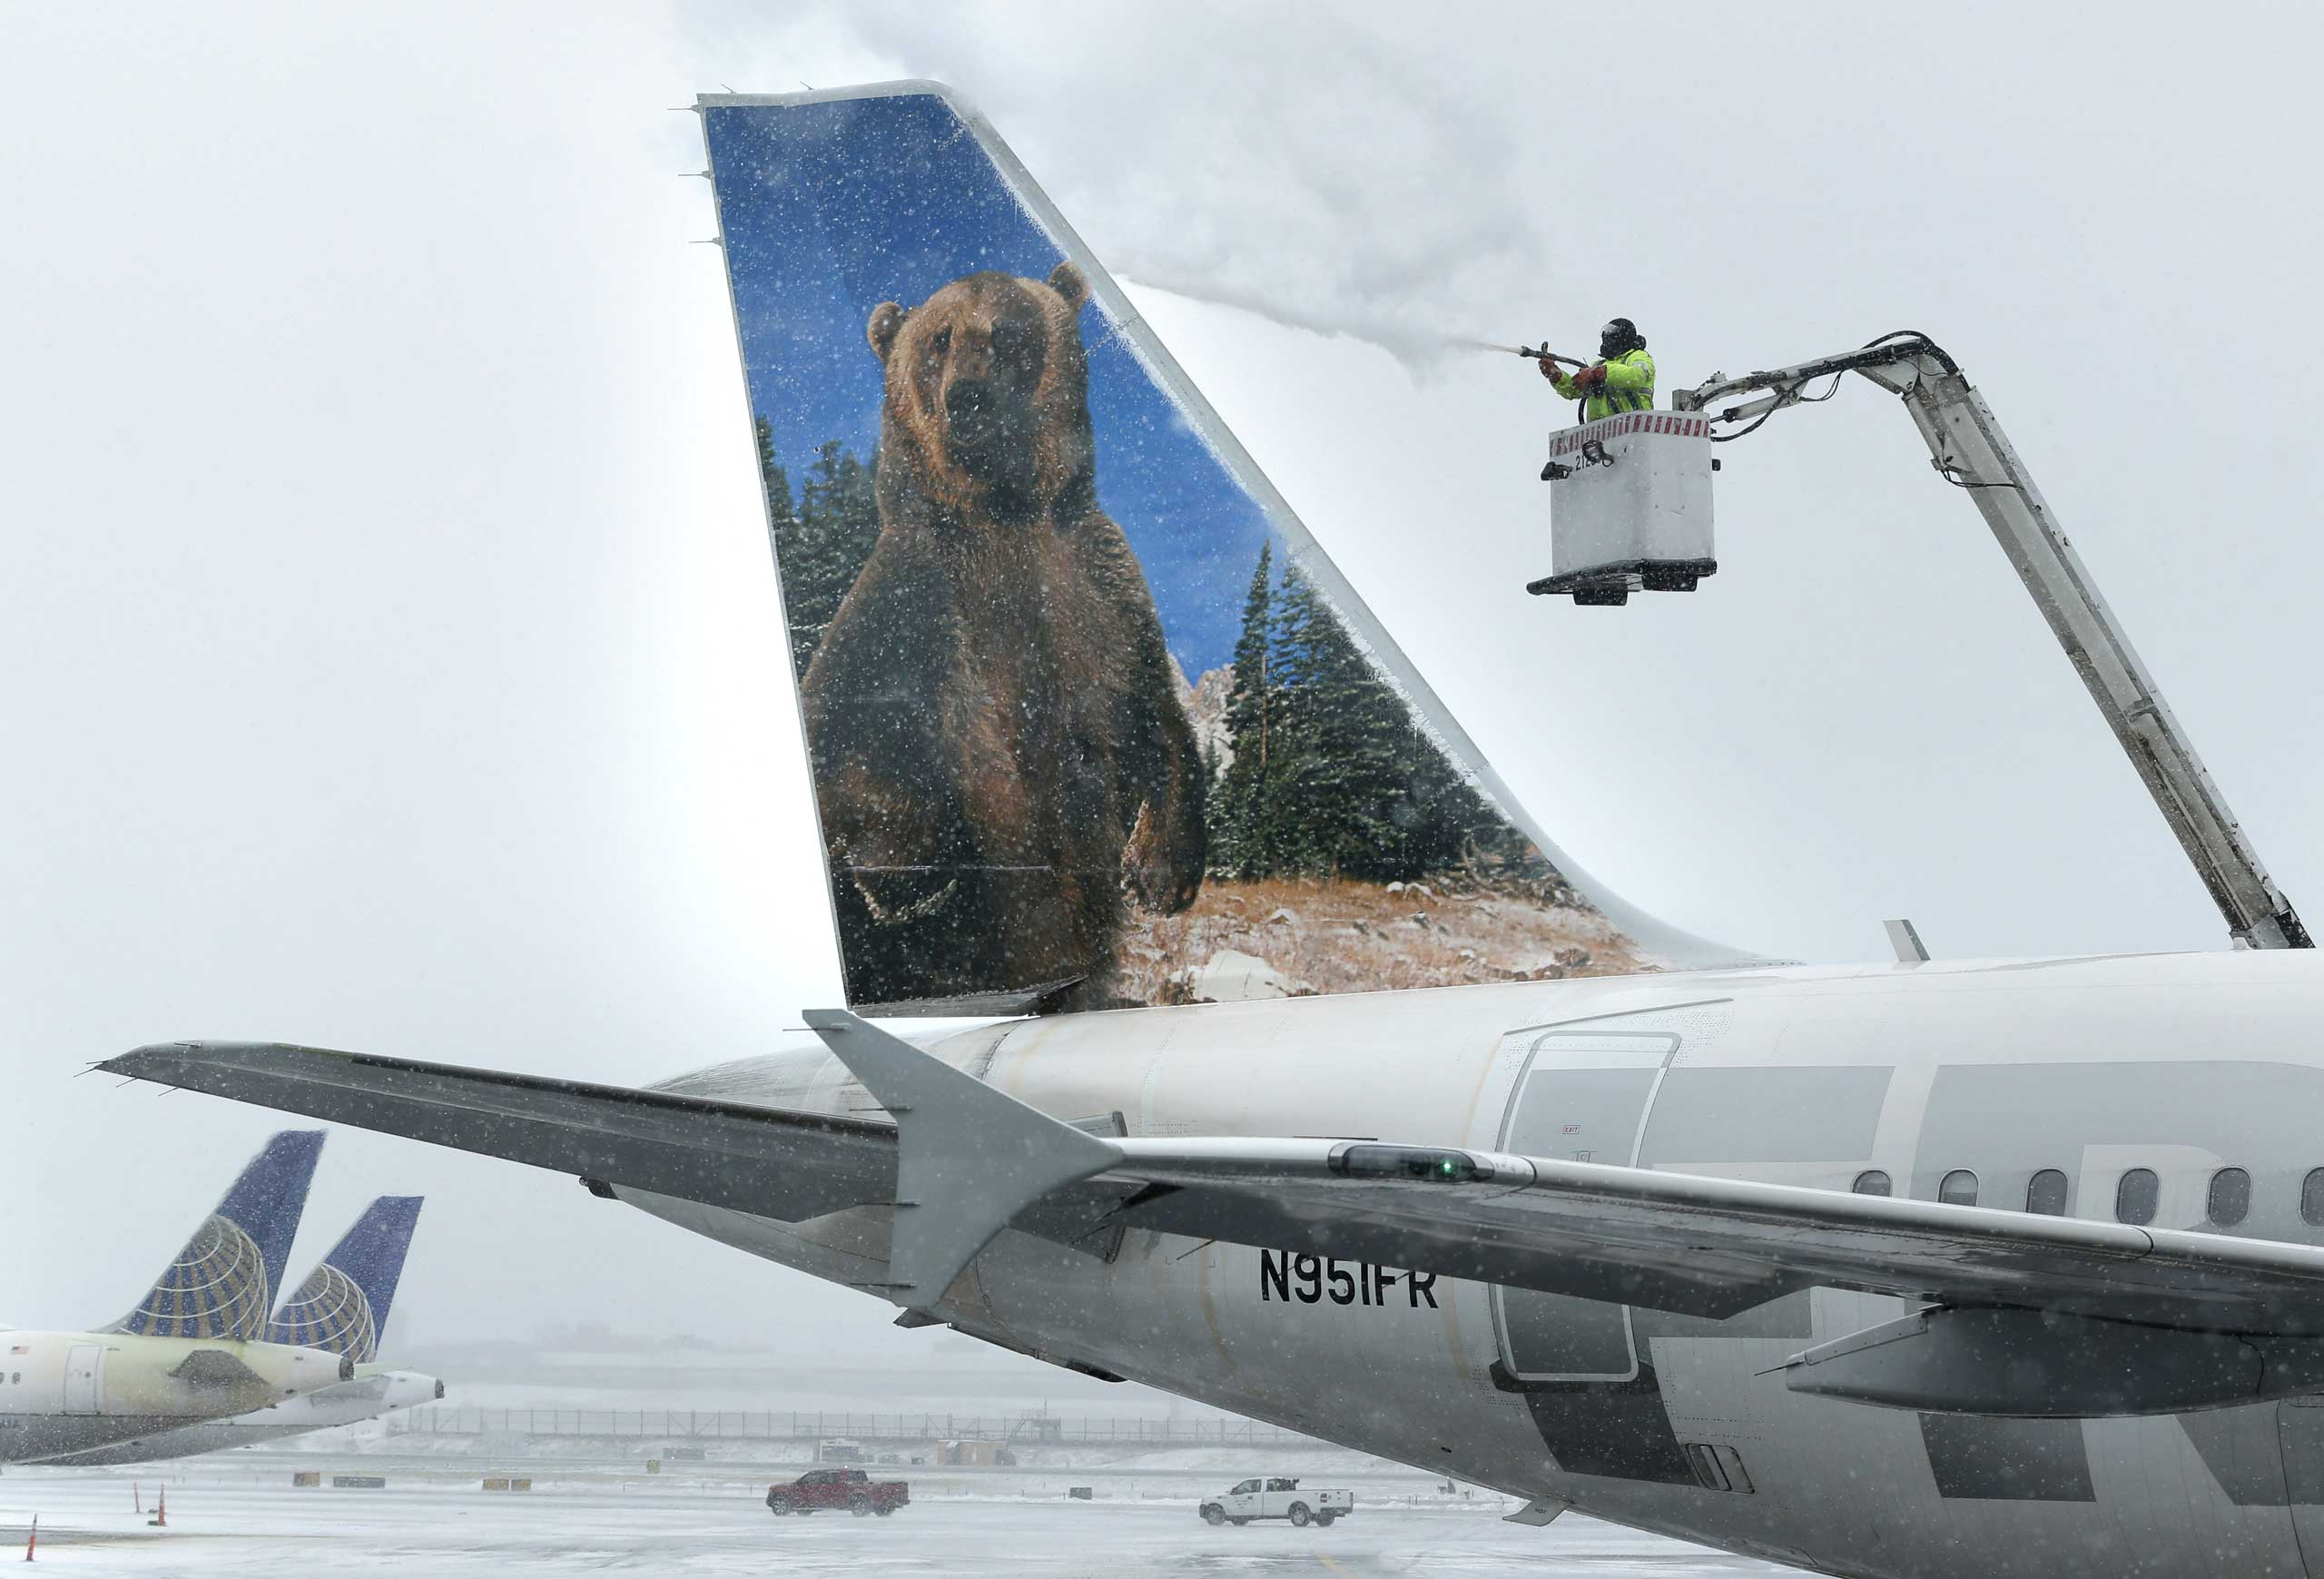 A crewmember de-ices a Frontier Airlines plane at LaGuardia Airport in New York City, Jan. 26, 2015.